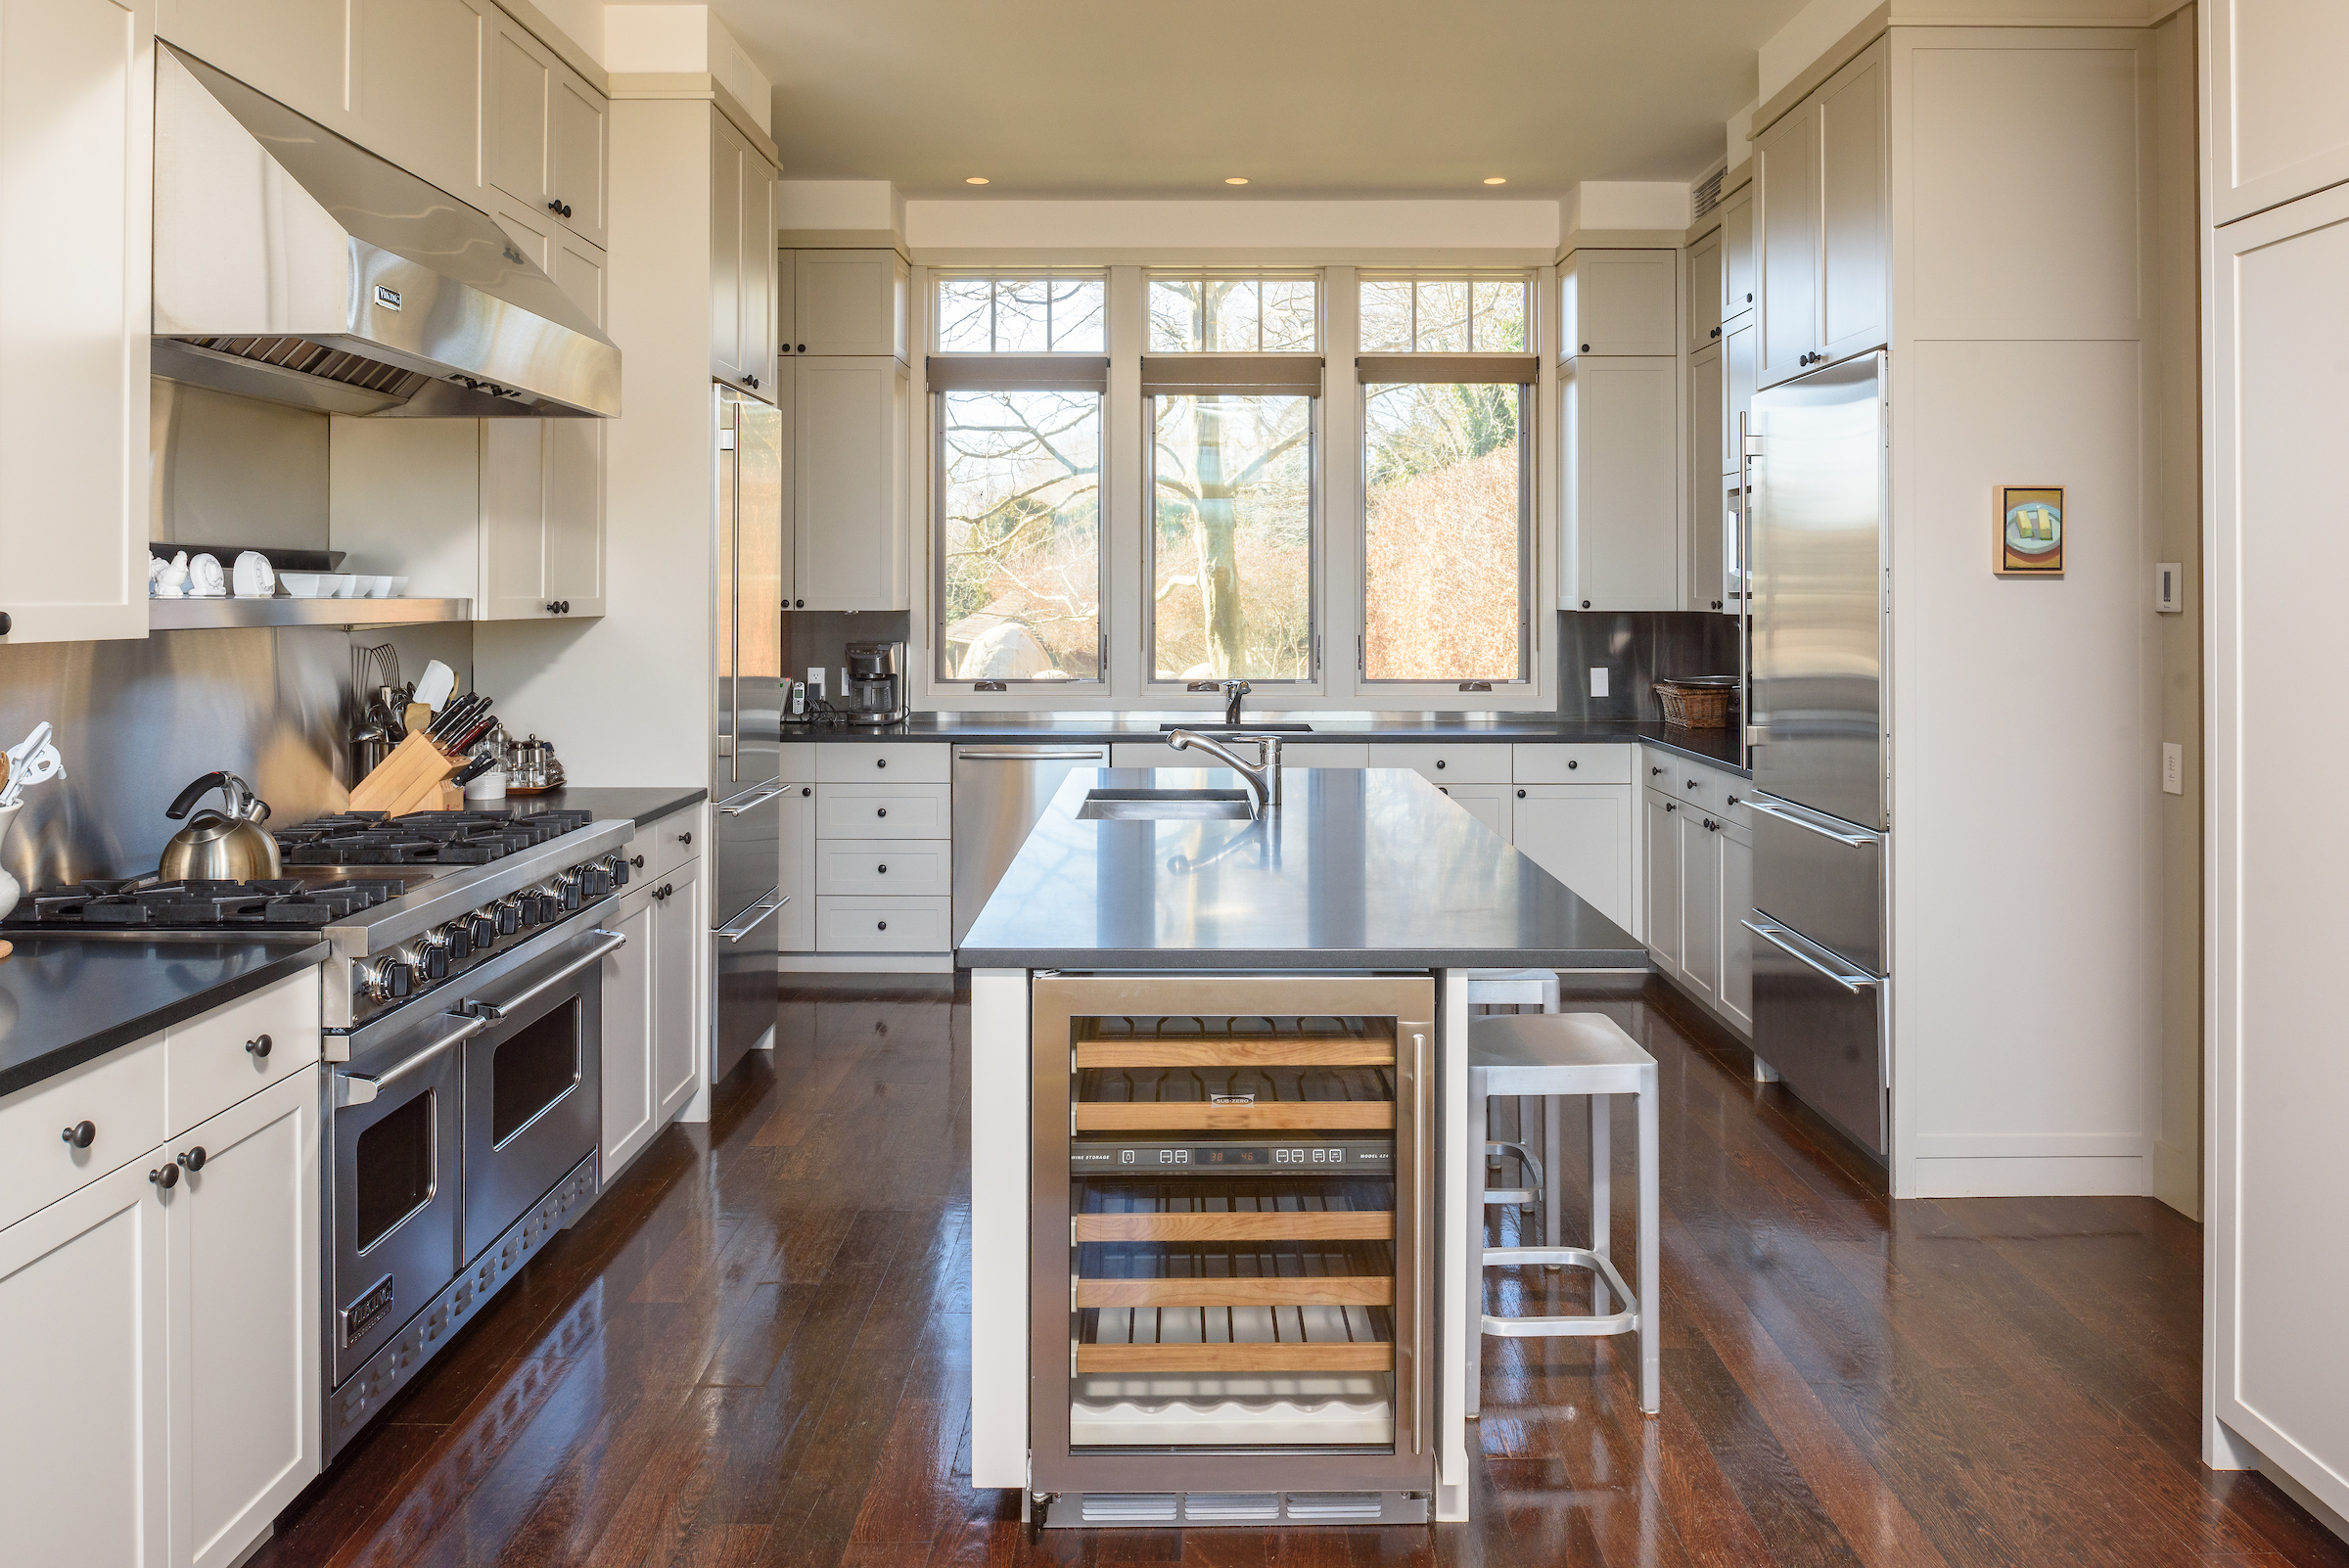 64 Holly Lane, Water Mill. COURTESY SOTHEBY'S INTERNATIONAL REALTY